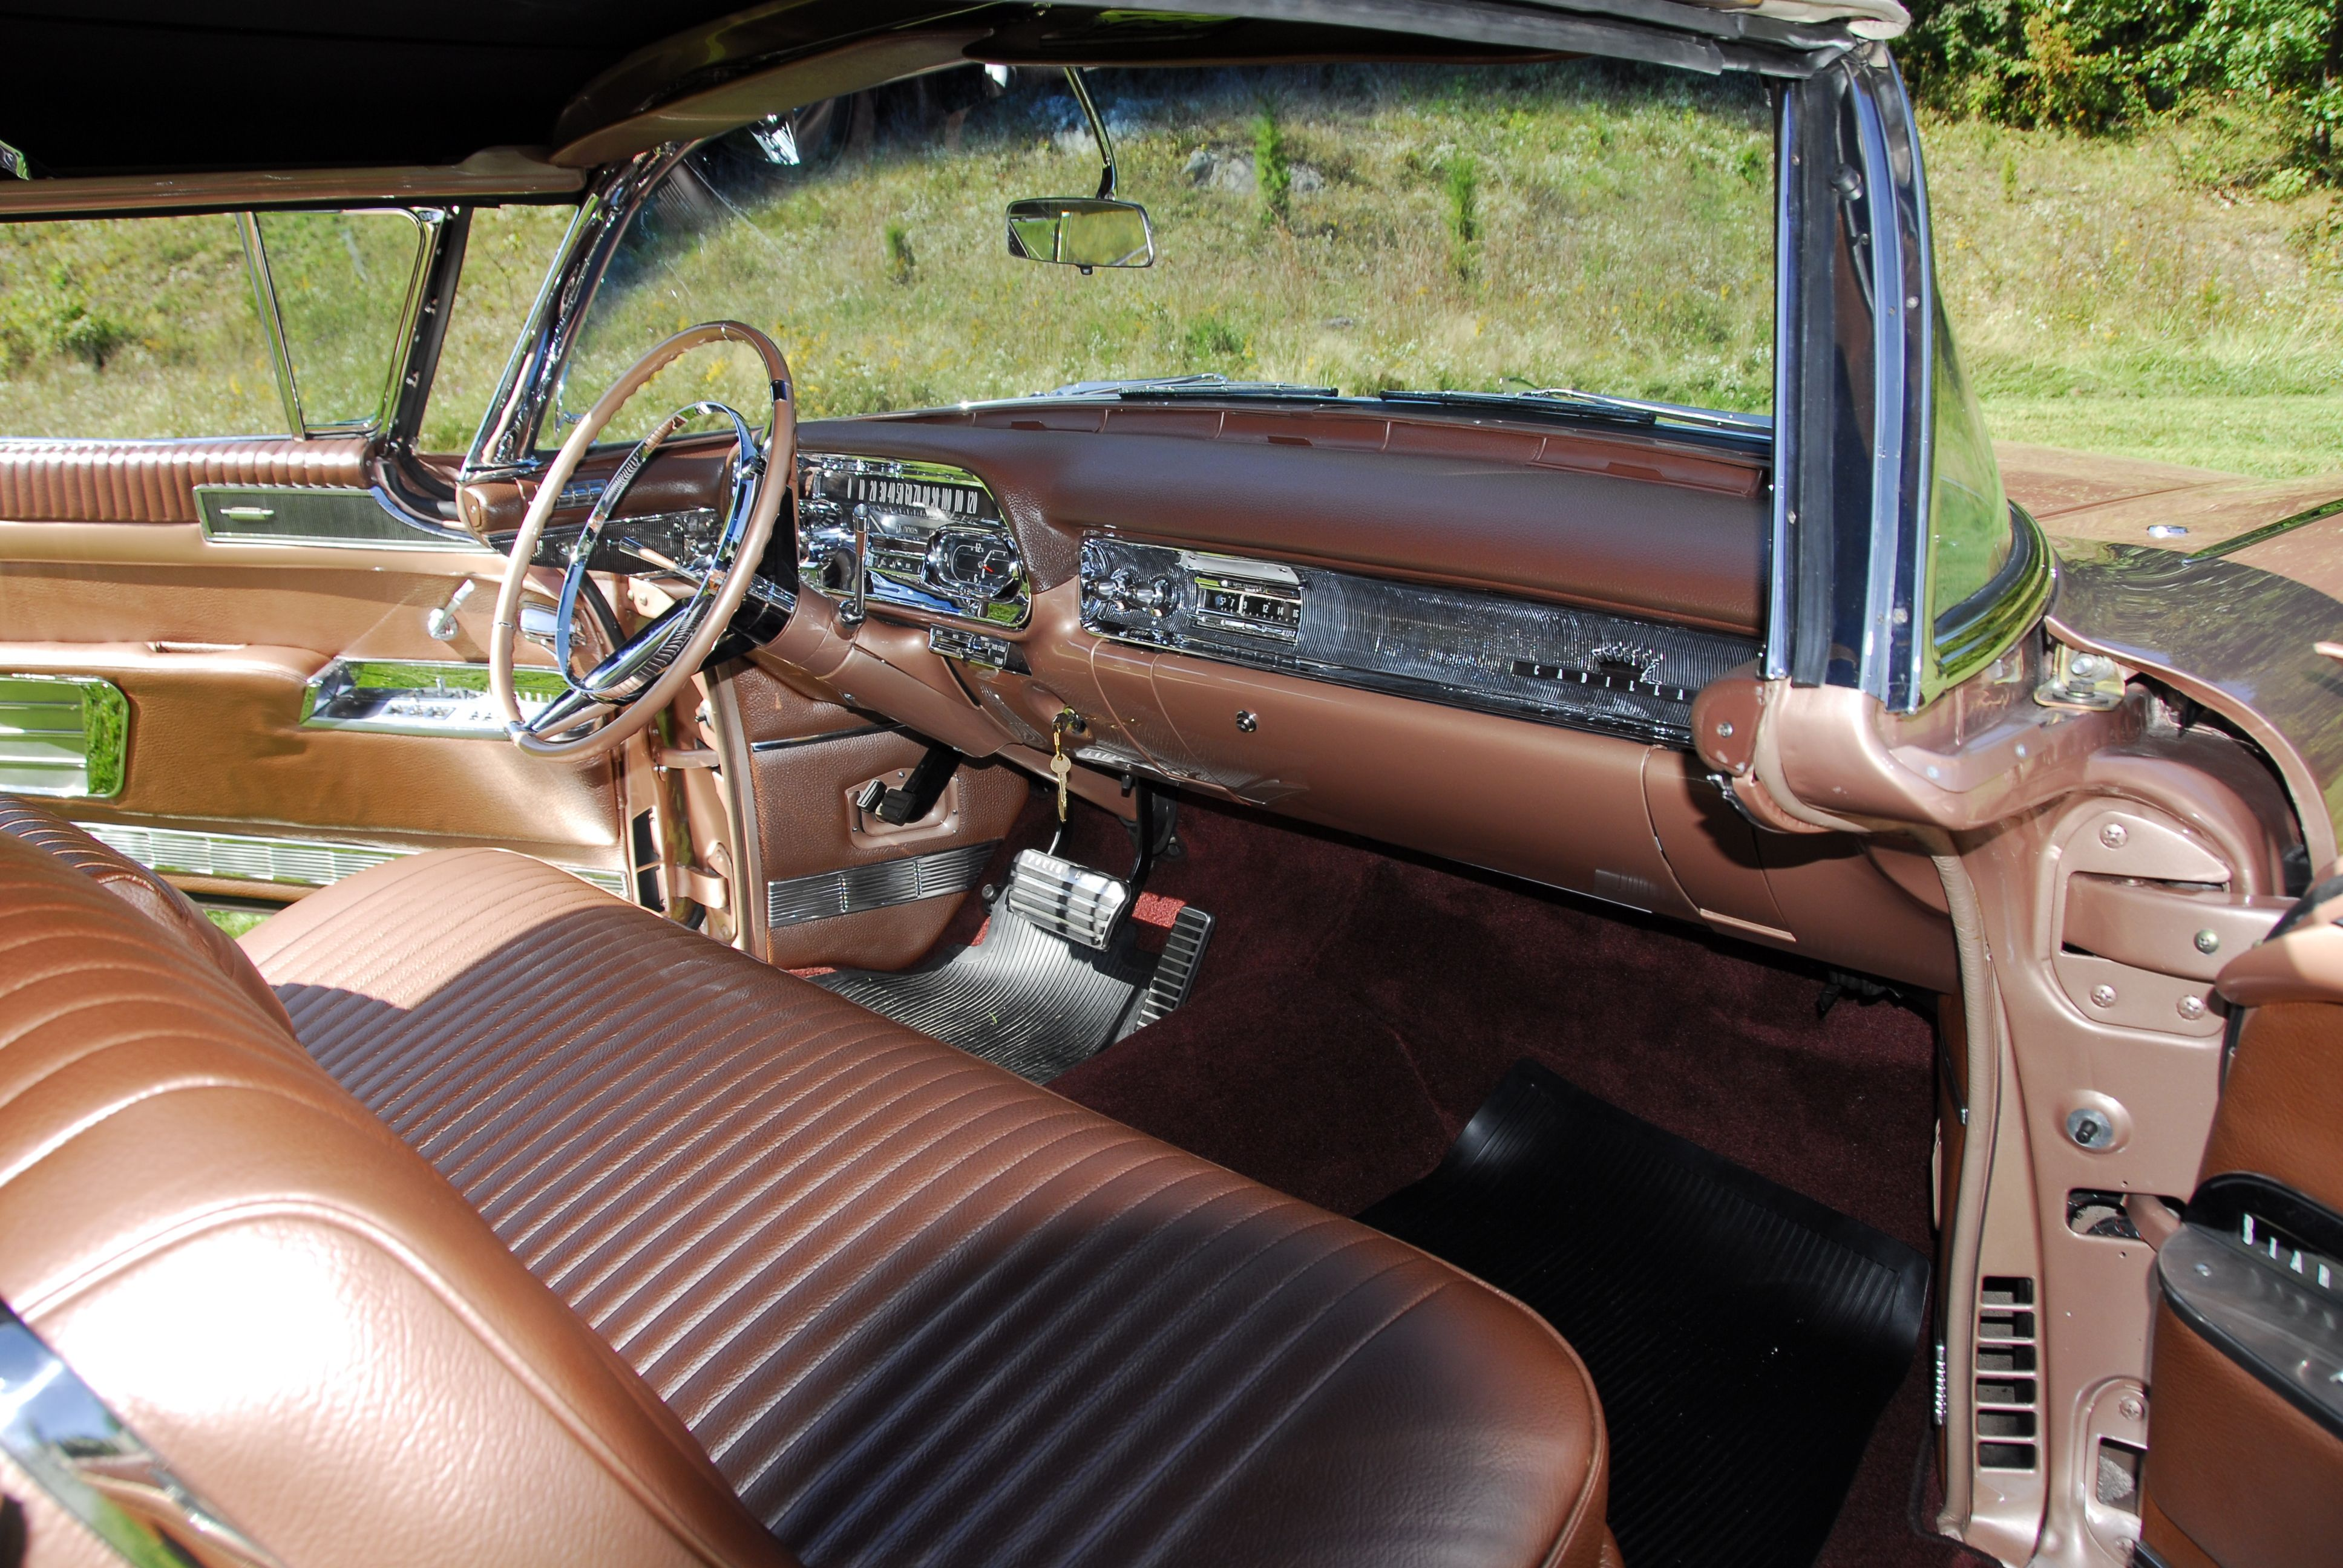 1958 cadillac eldorado biarritz interior restoration done in house by the cadillac restoration specialists of